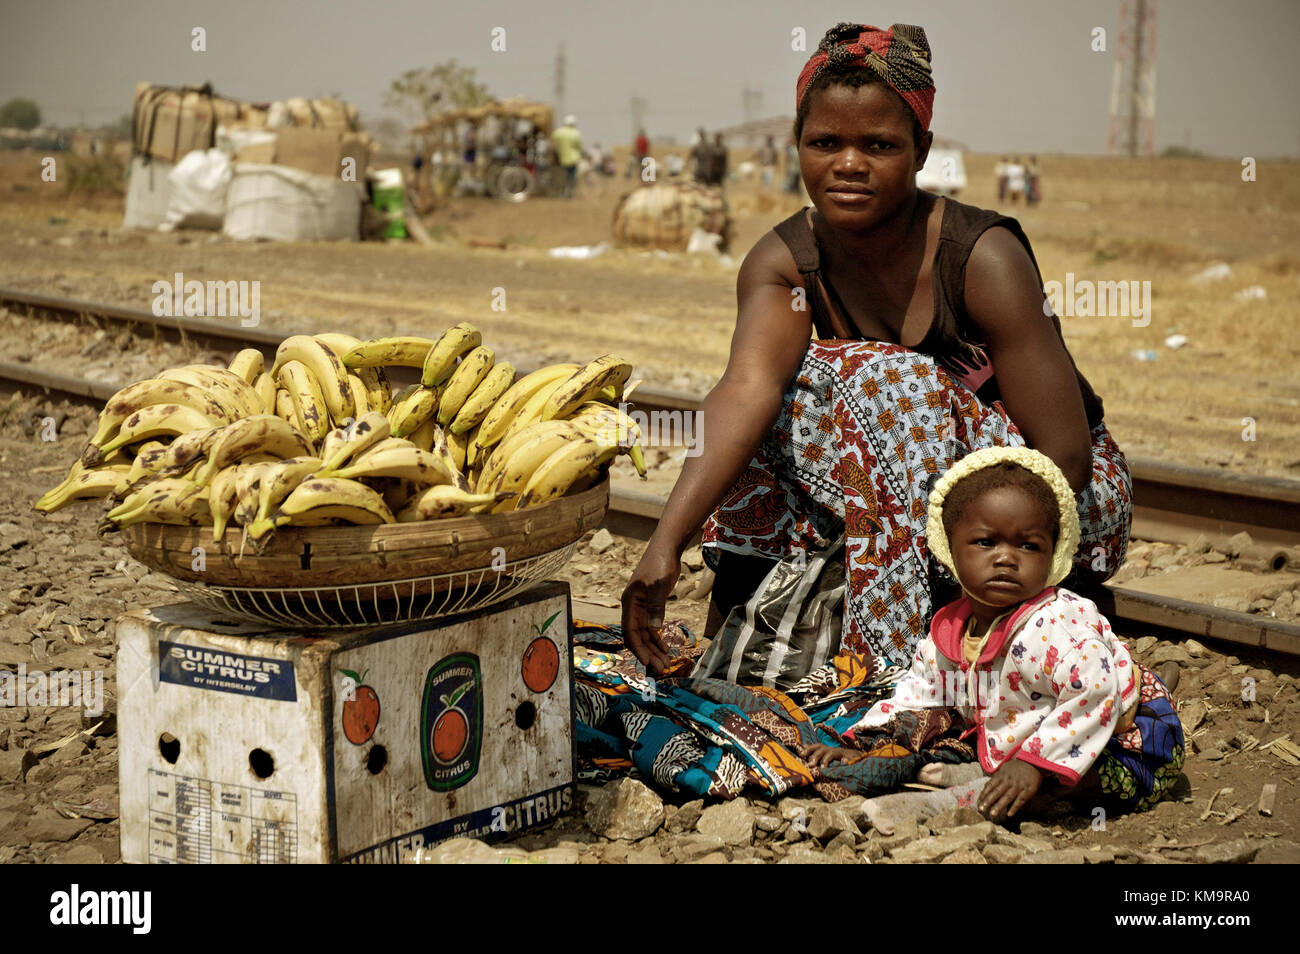 Mom selling bananas with her baby next to railway in Lusaka, the capital of Zambia Stock Photo